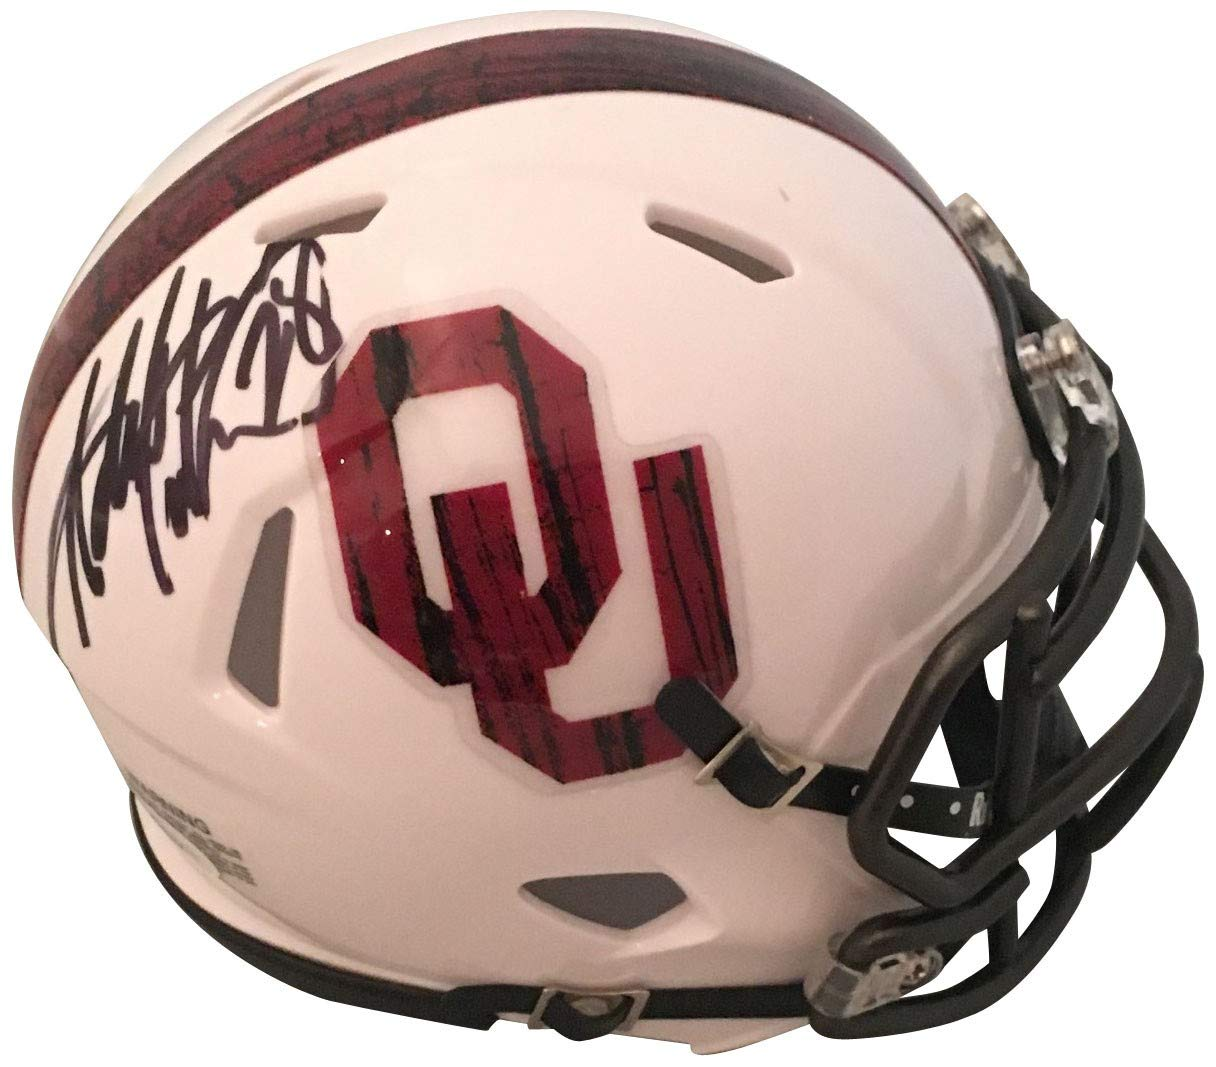 Adrian Peterson Autographed Oklahoma Sooners Bring the Wood Signed Football Mini Helmet JSA COA Powers Collectibles